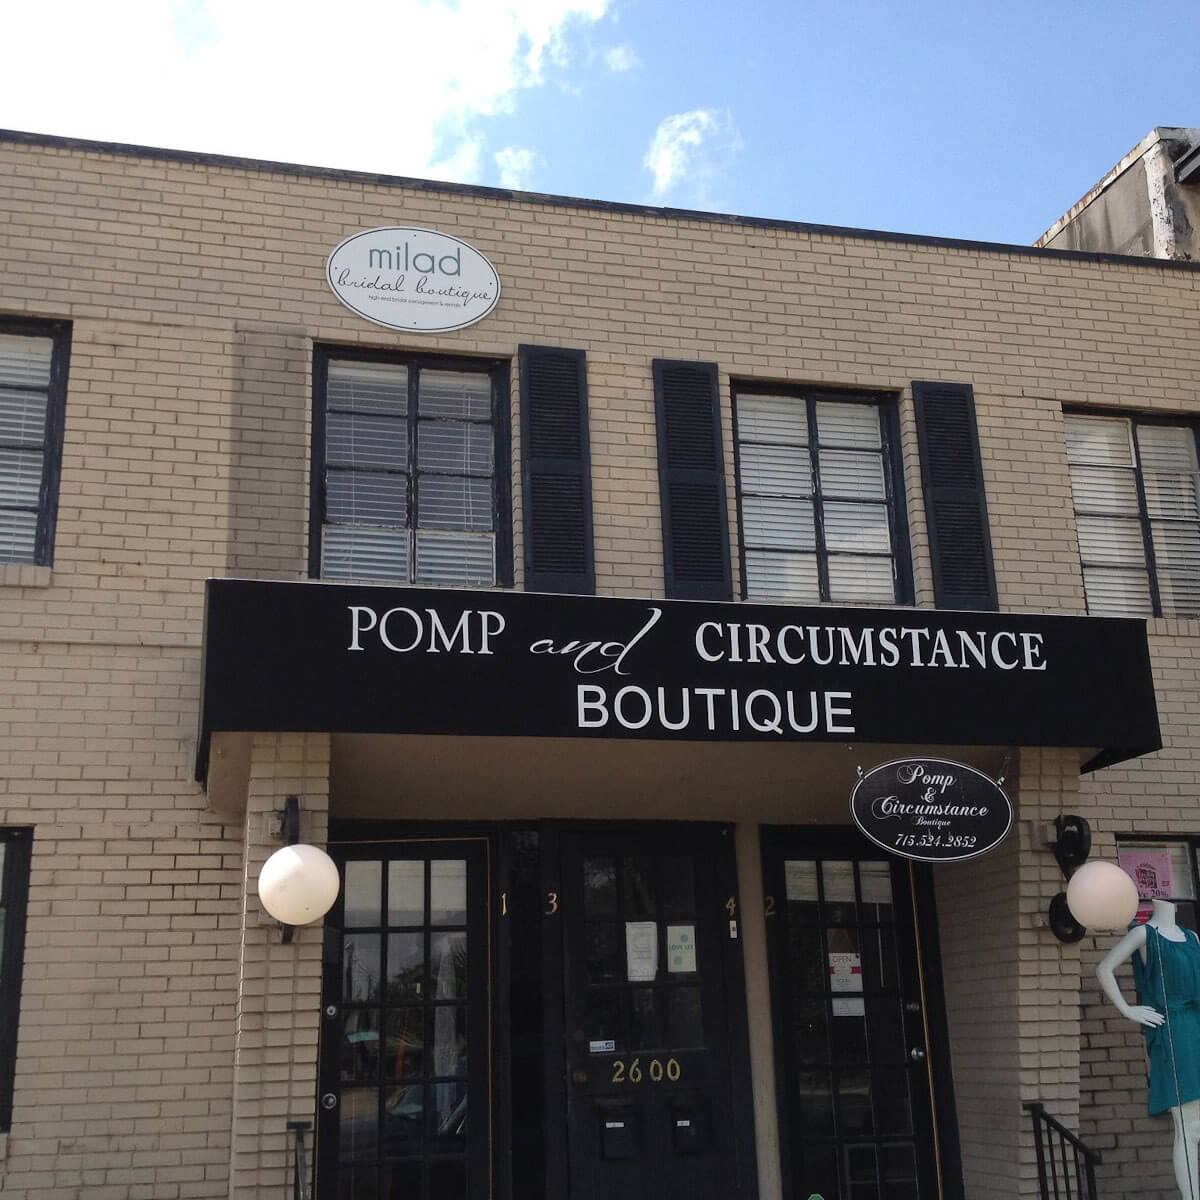 Pomp & Circumstance, boutique, store front, October 2012